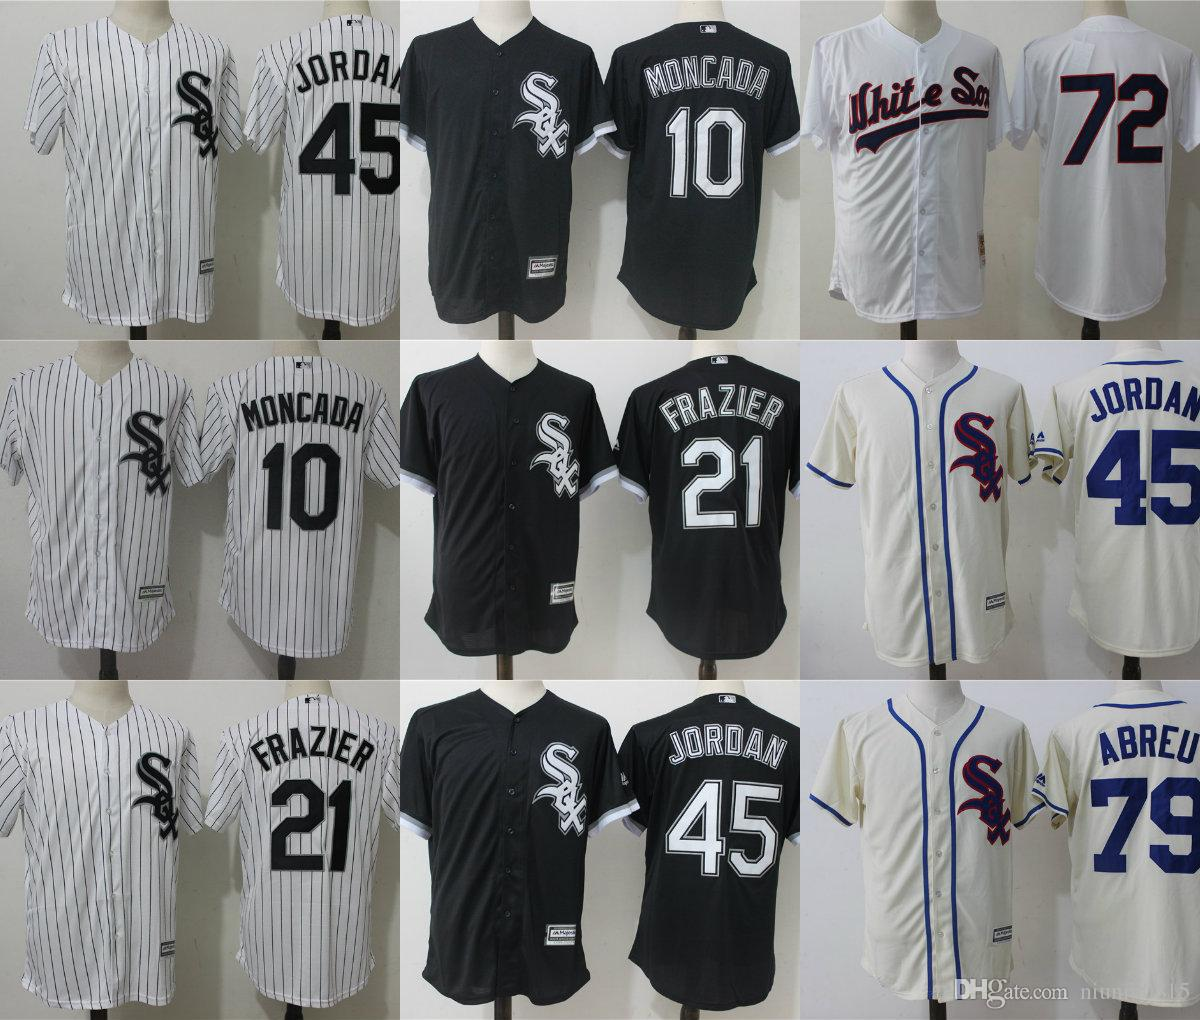 499ce4e5a8c ... promo code for 2018 mens chicago white sox 45 21 michael todd frazier  jordan baseball jerseys